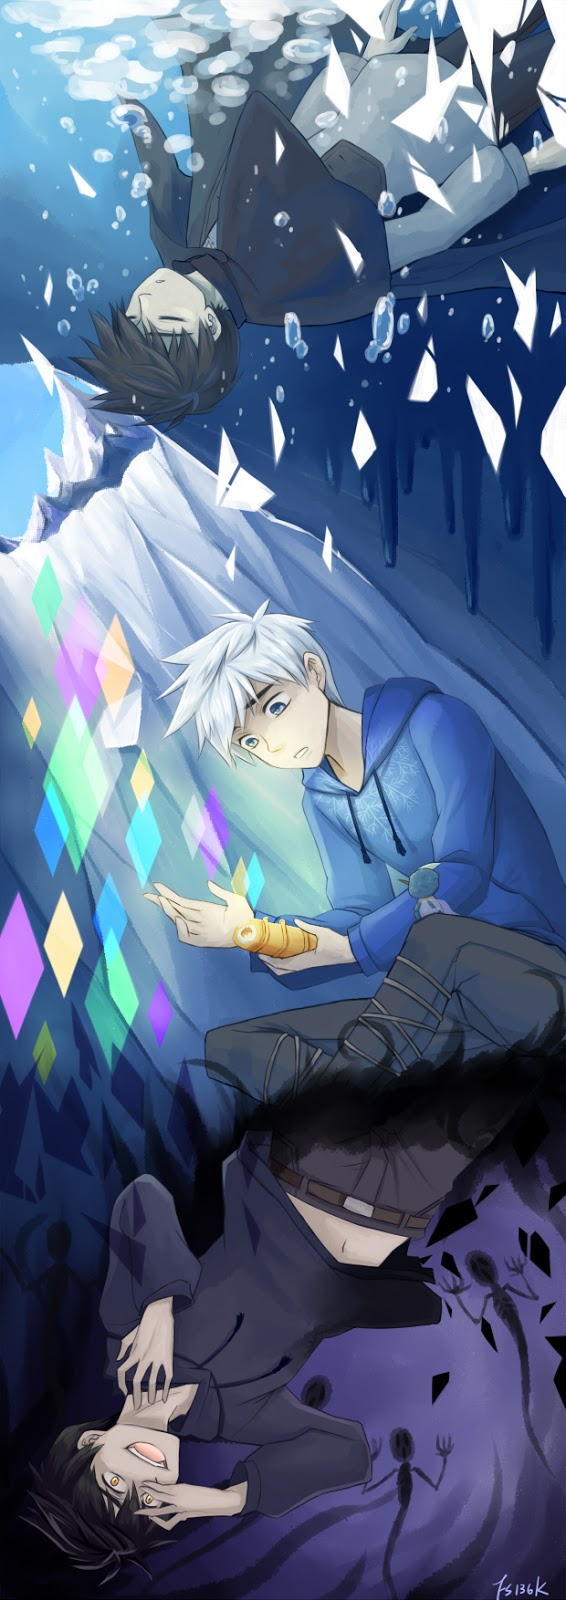 jack frost fighting pitch - photo #38